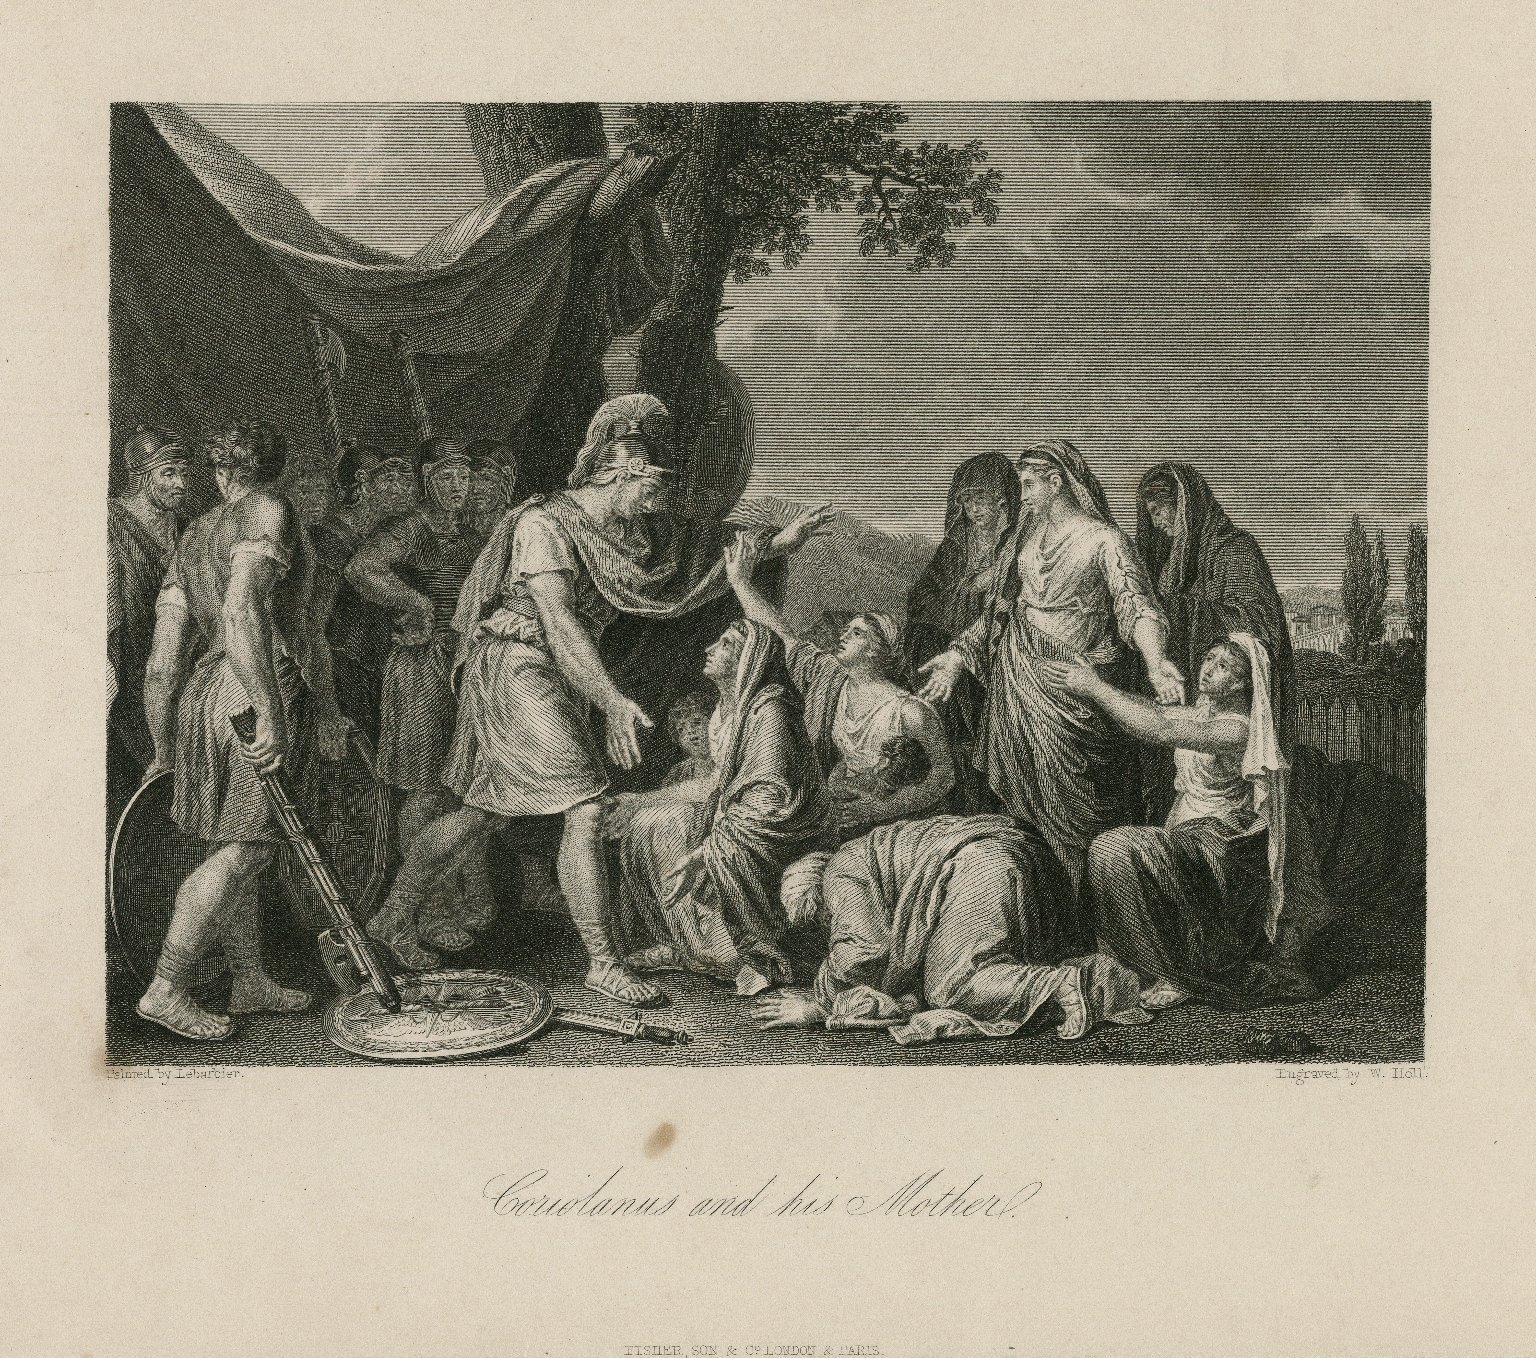 Coriolanus and his Mother [graphic] : [Act V, scene 3] / painted by Lebarbier ; engraved by W. Holl.